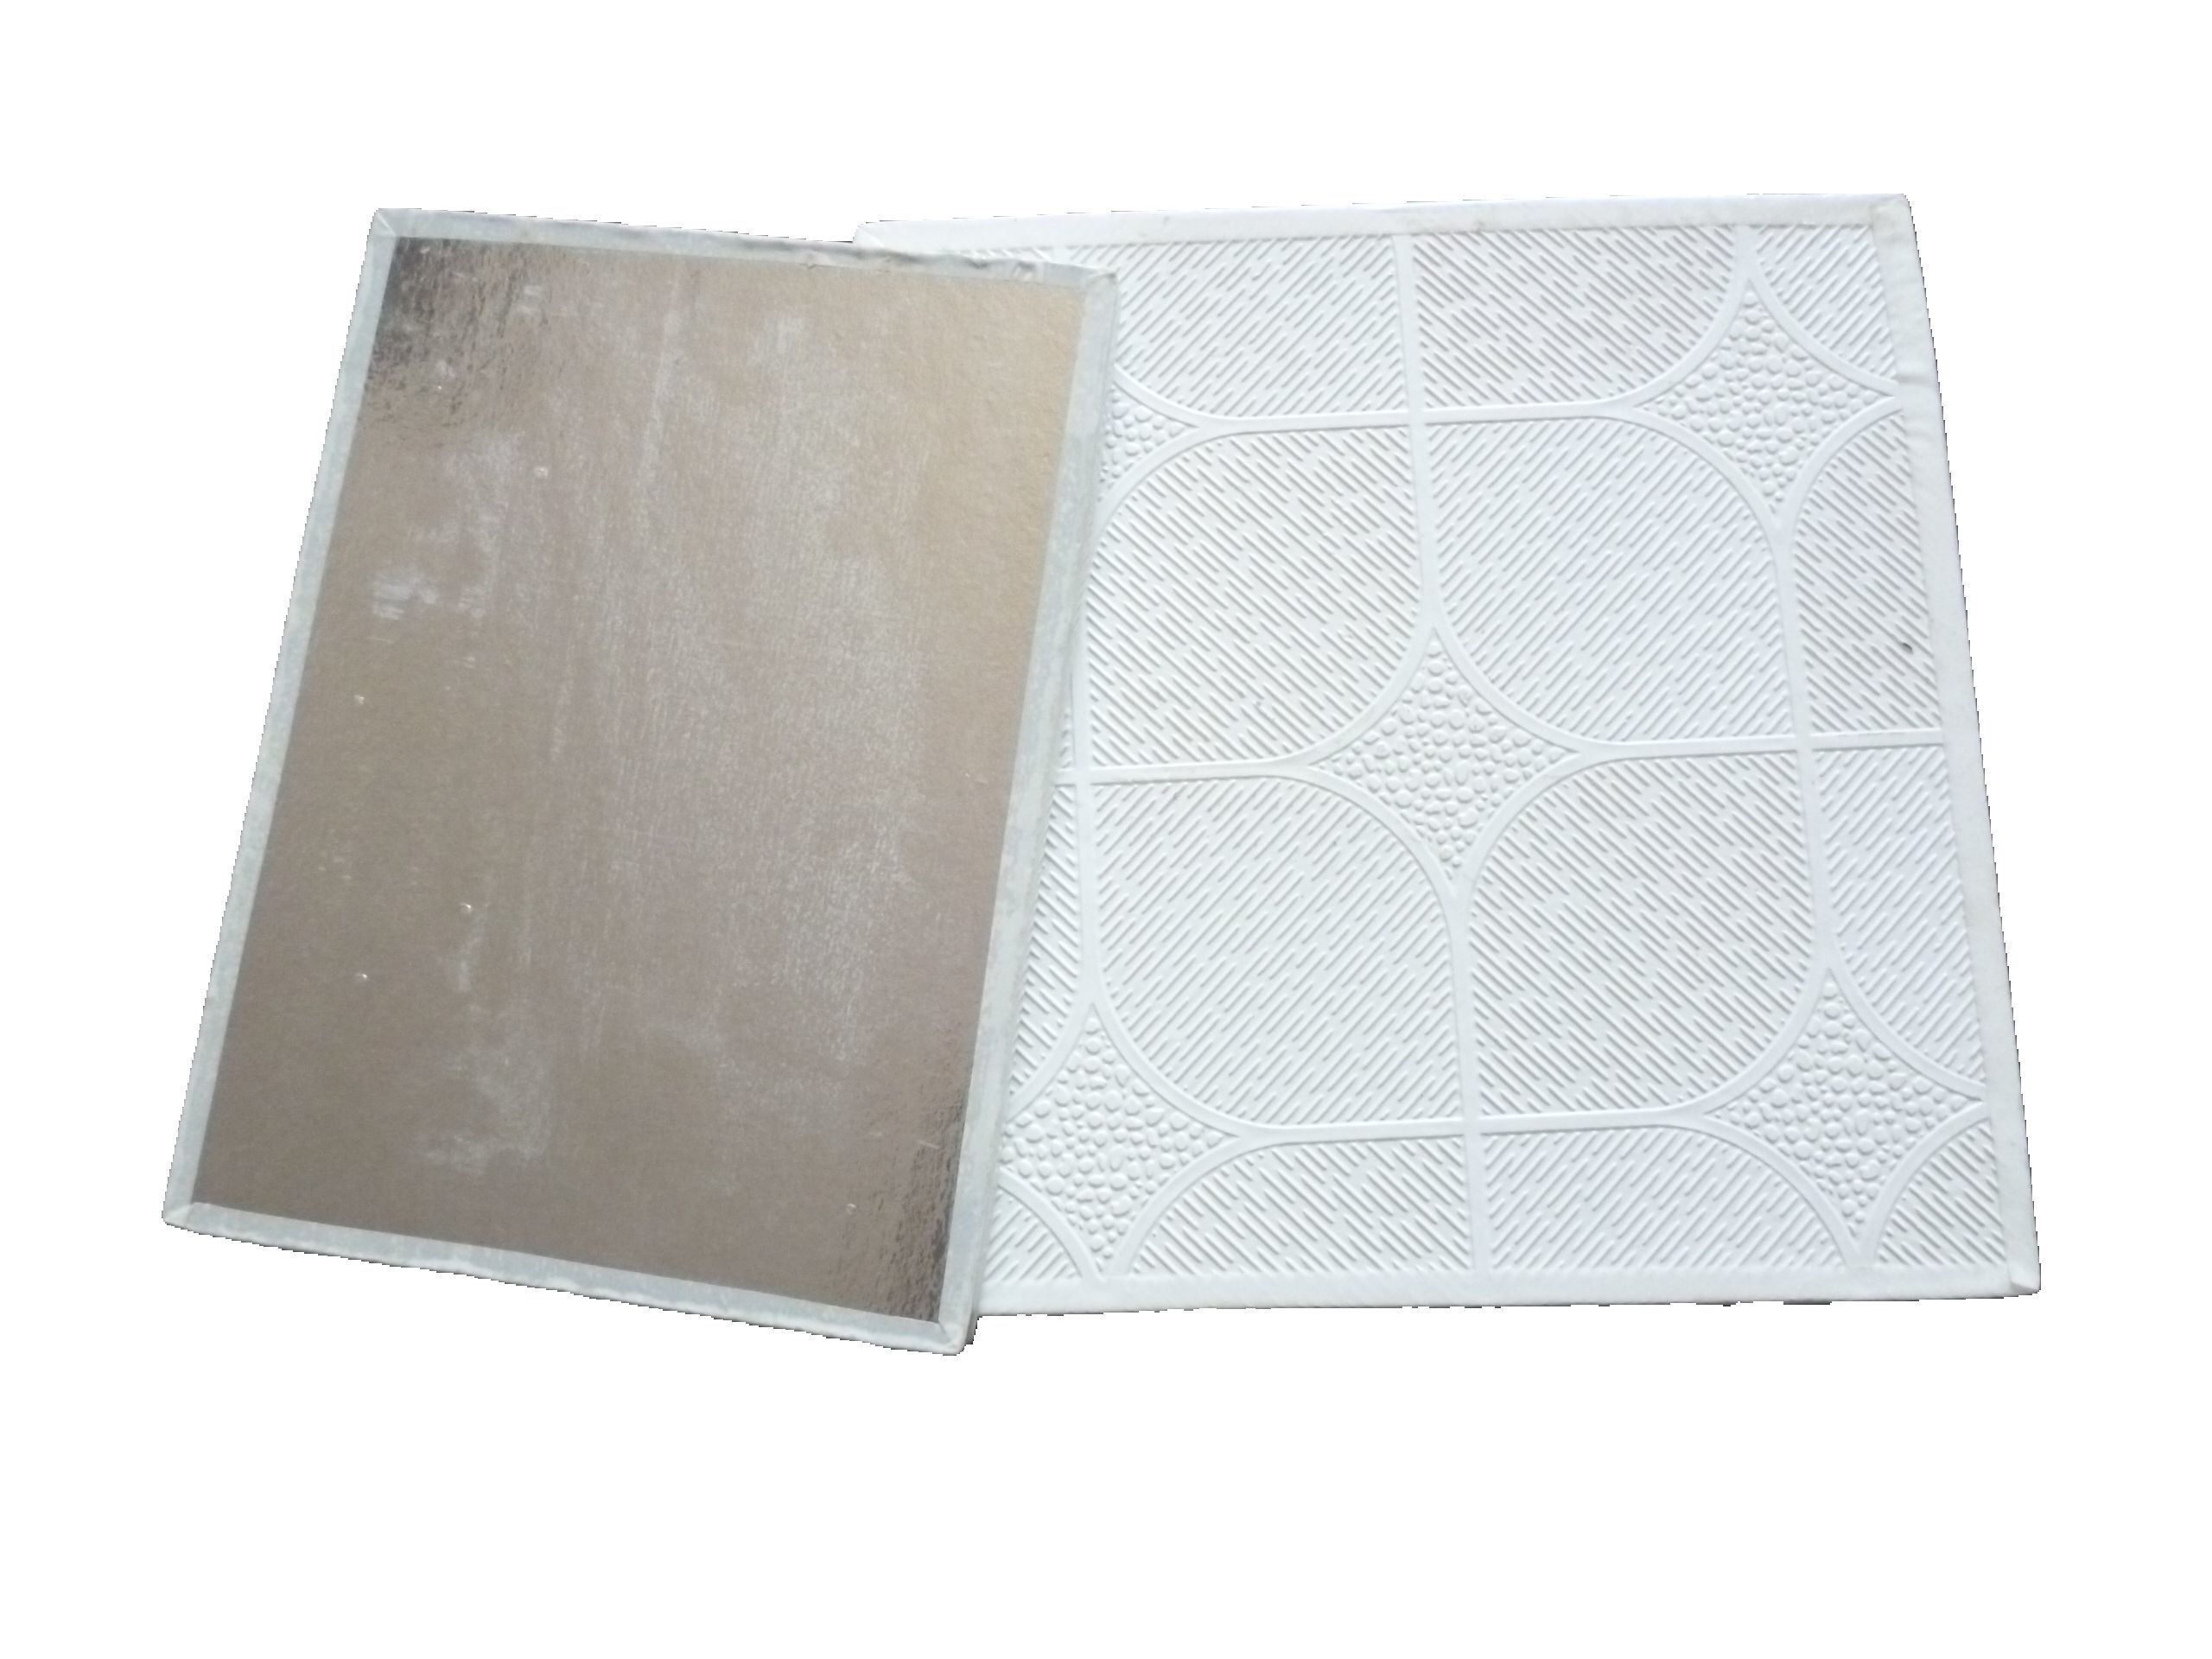 China pvc gypsum ceiling tile with pvc and aluminum china gypsum china pvc gypsum ceiling tile with pvc and aluminum china gypsum board pvc gypsum board dailygadgetfo Images